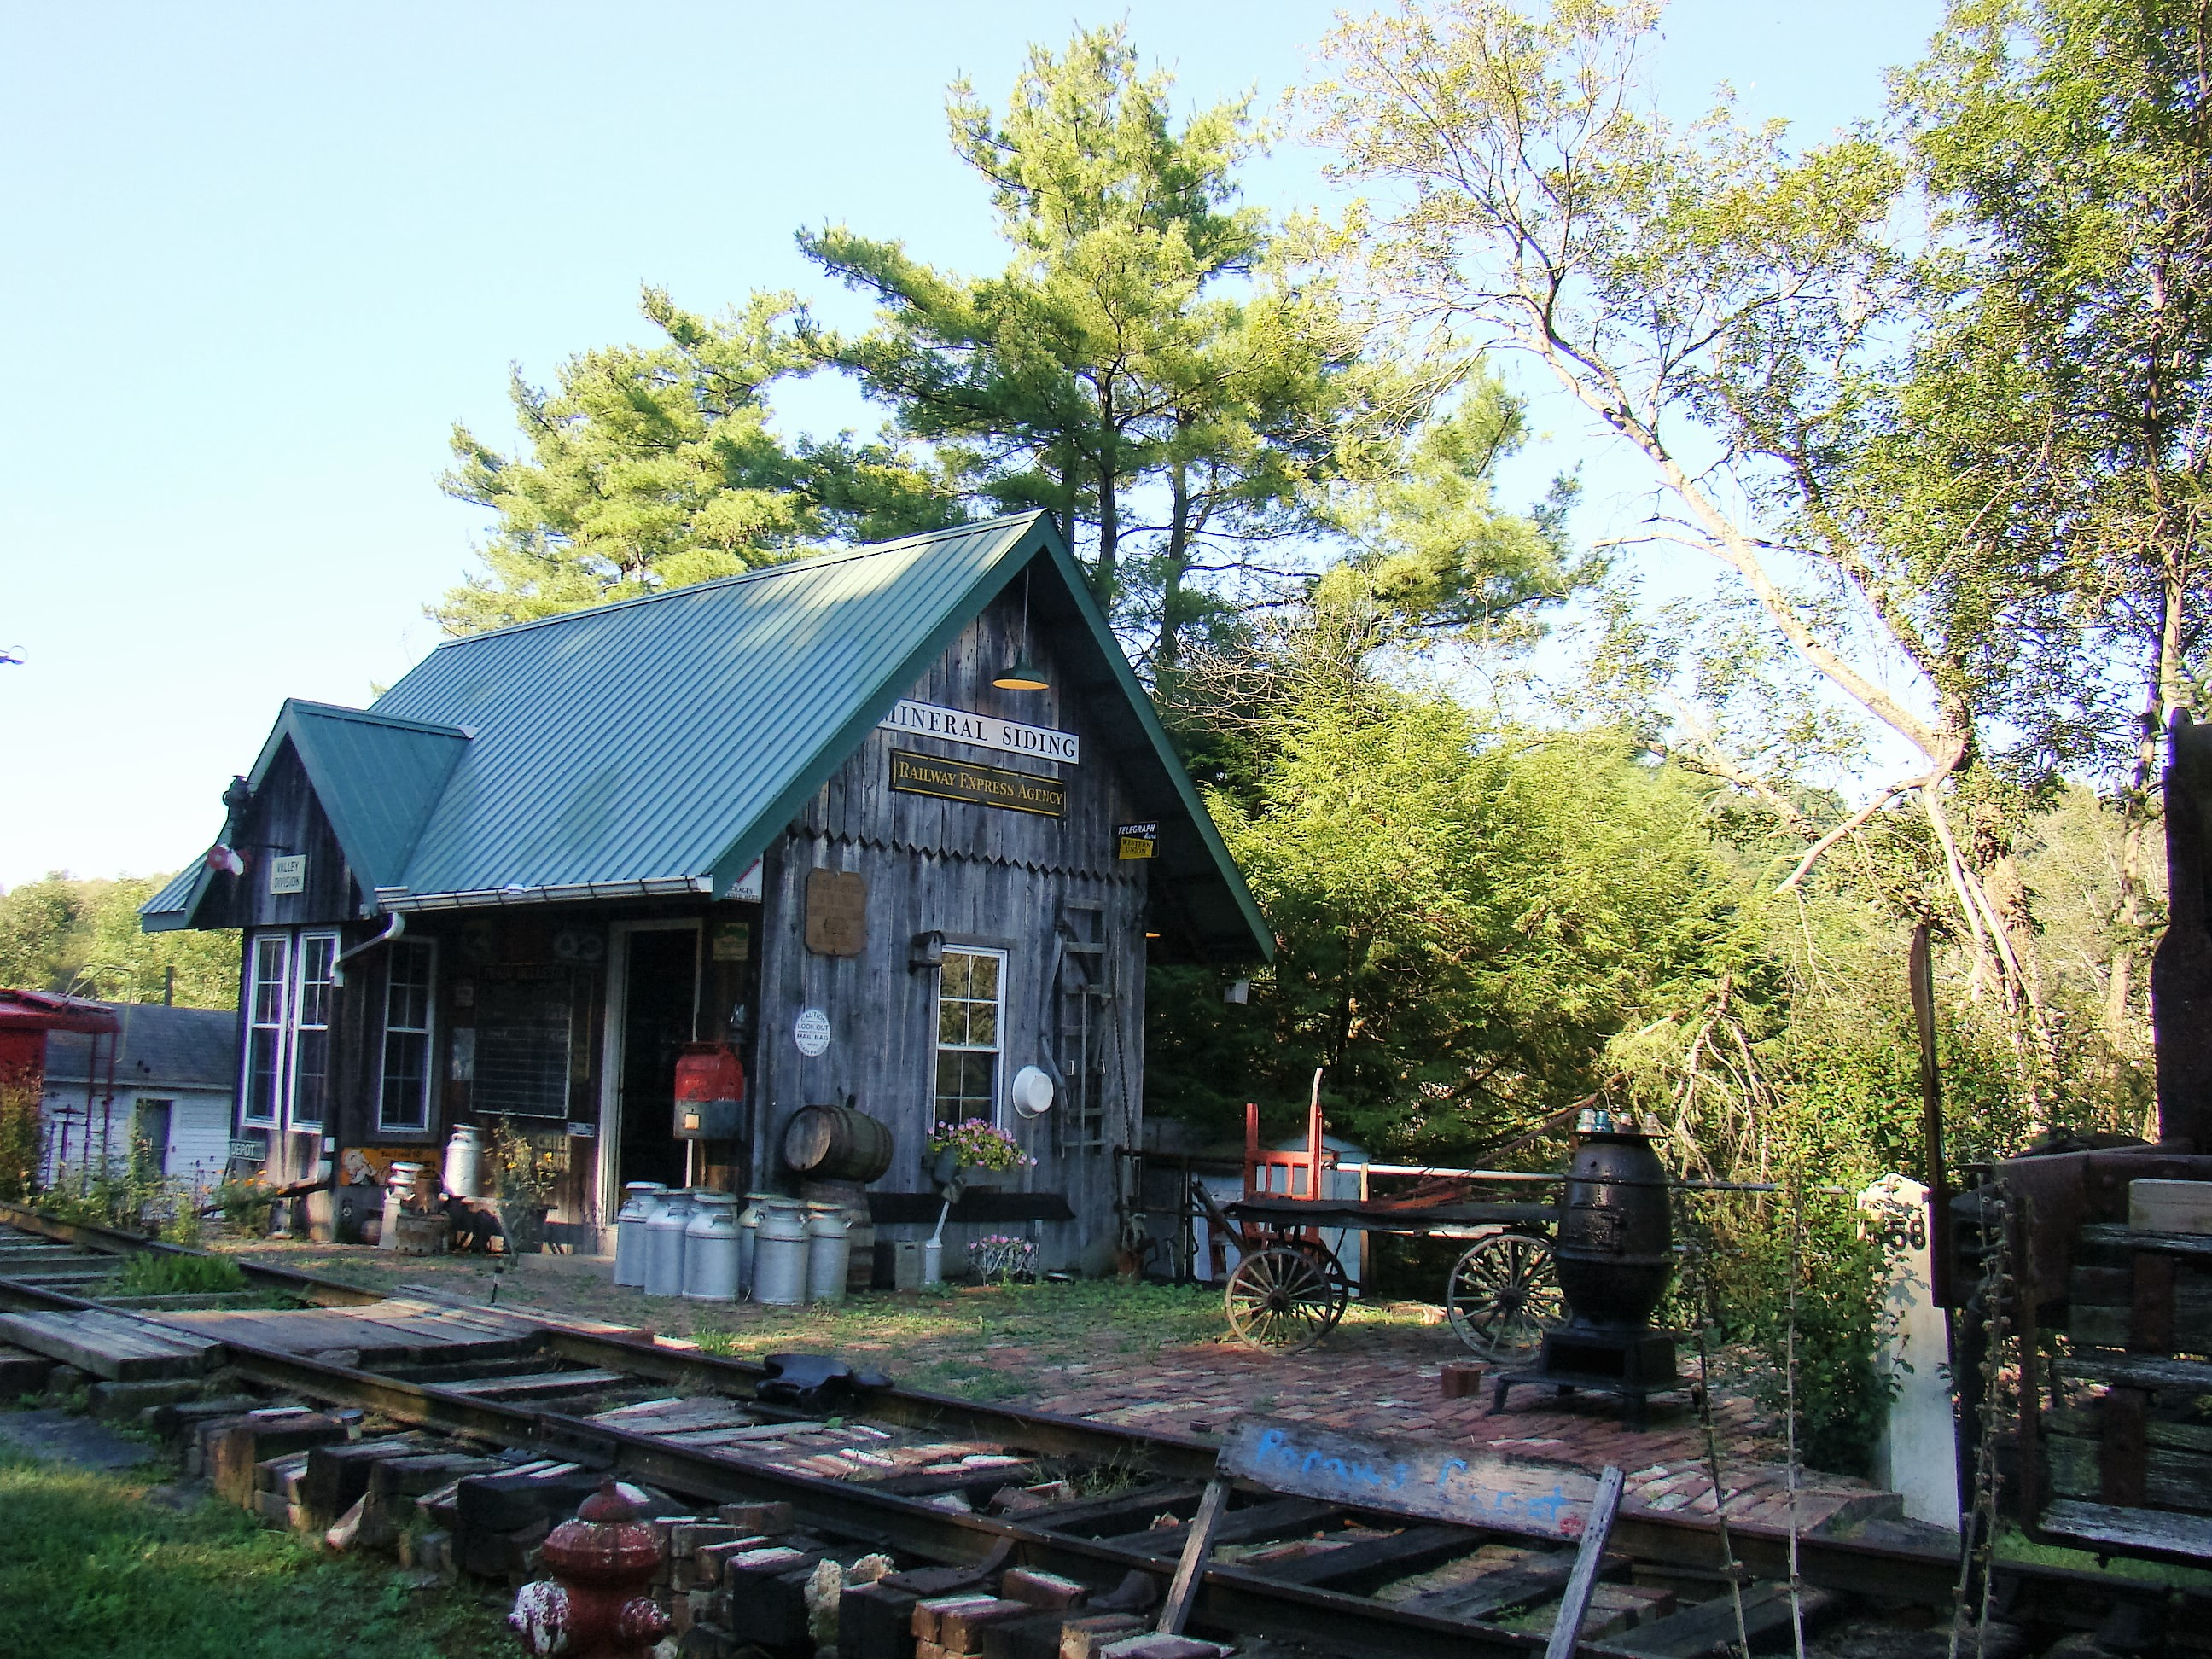 Dave built his own Depot and Museum in his back yard.